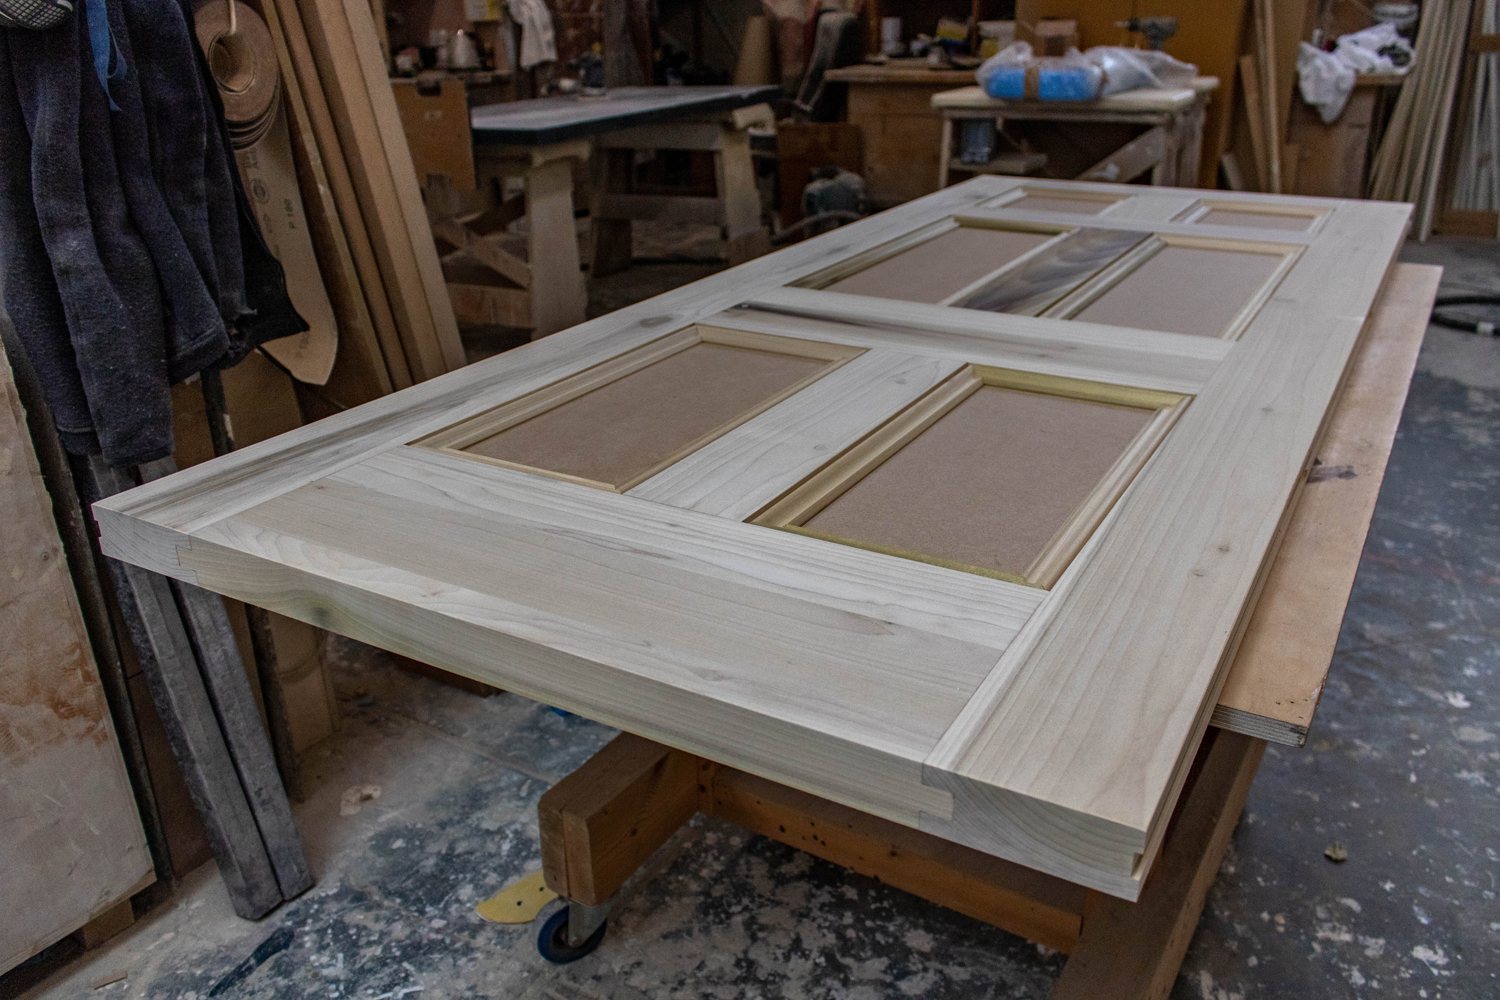 wood door being constructed in joinery workshop